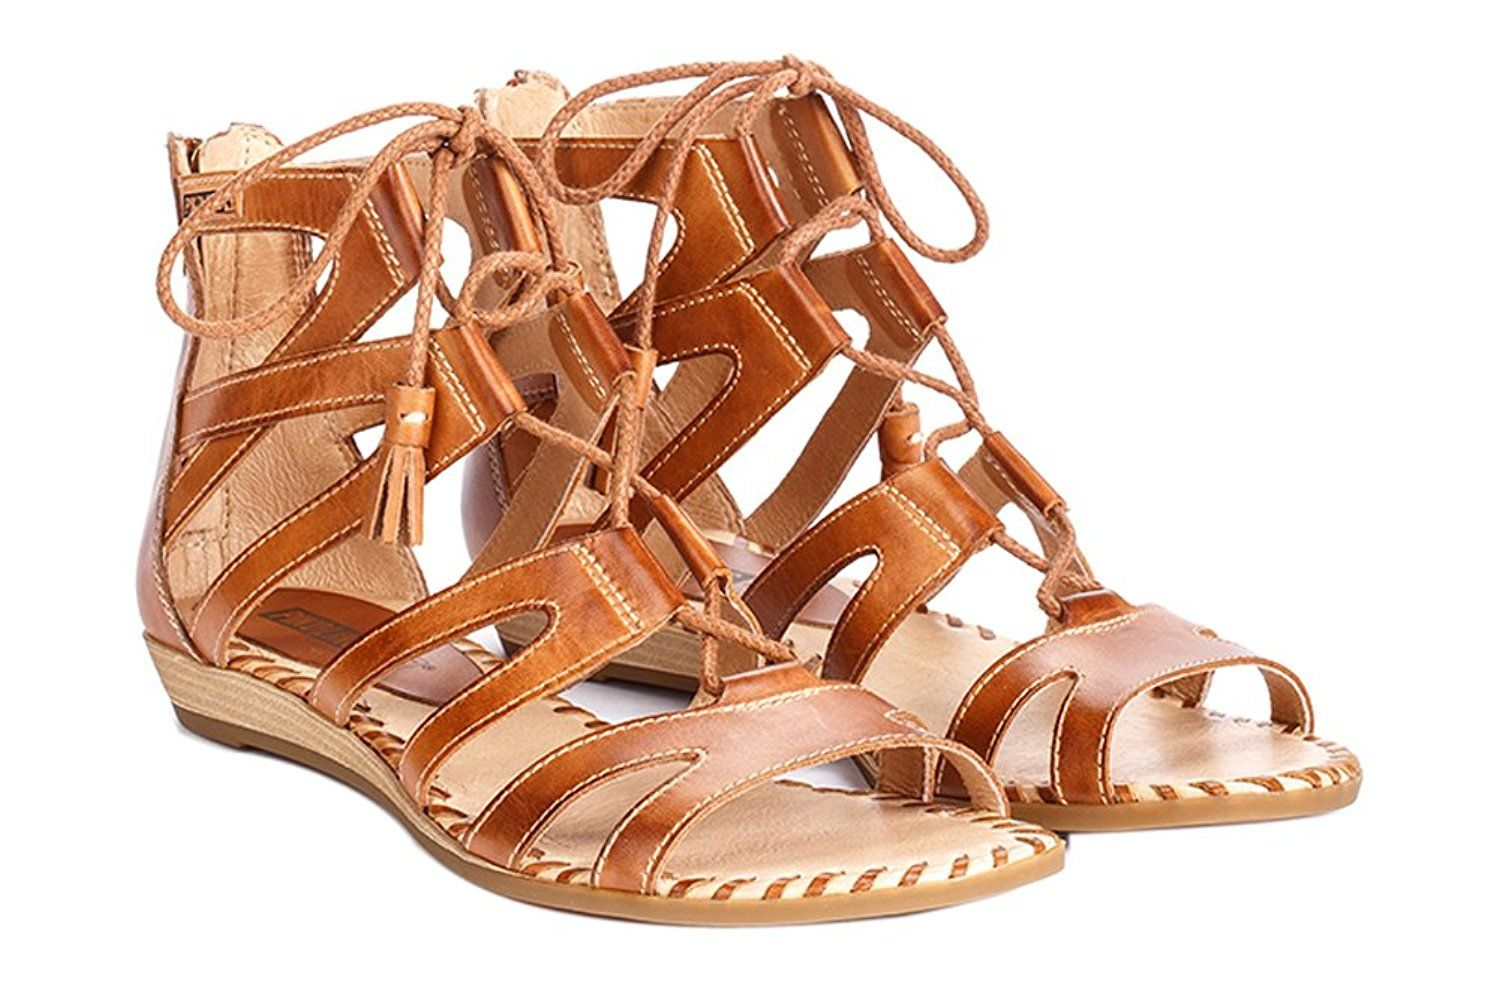 87b16adfe22f Pikolinos Womens Alcudia Gladiator Sandal   You can find more details by  visiting the image link. (This is an affiliate link)  sandalslover